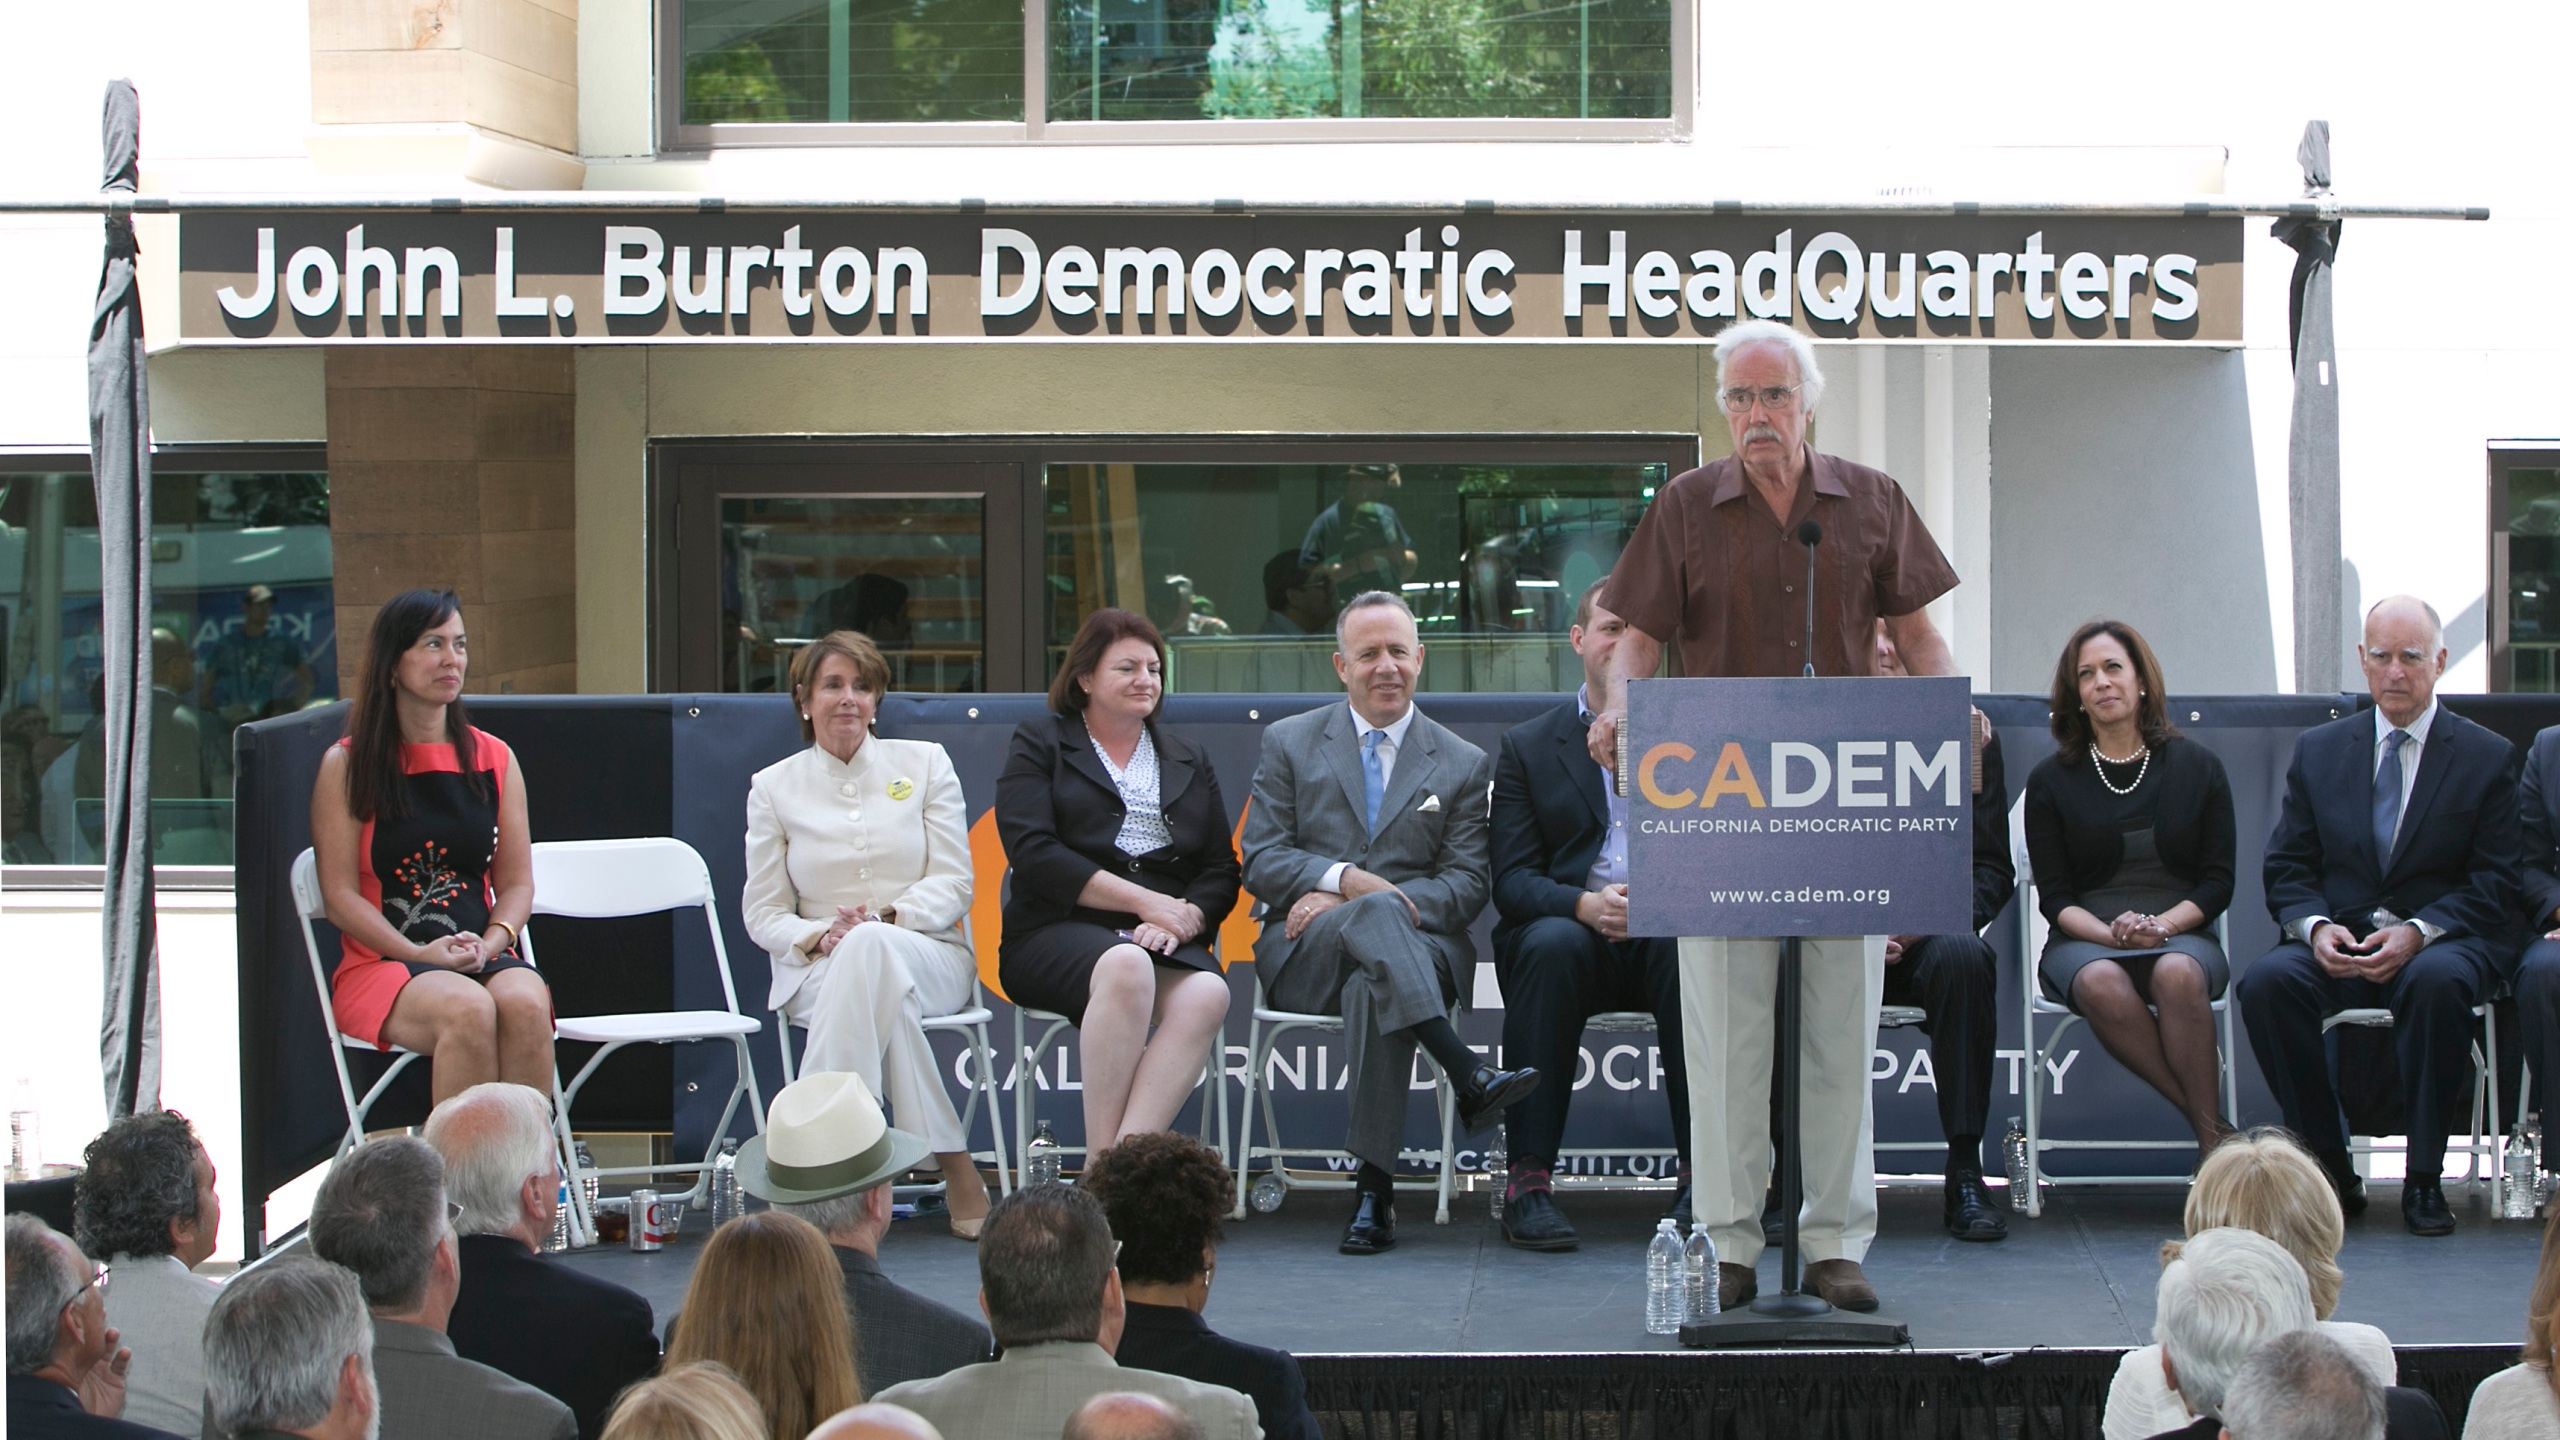 In this June 16, 2014, file photo. then-California Democratic Party Chairman John Burton speaks during the dedication of the John L. Burton California Democratic Party Headquarters in Sacramento, Calif., in Sacramento, Calif. Two California men have been charged with plotting to blow up the state Democratic Party's headquarters in Sacramento, a bombing they hoped would be the first in a series of politically-motivated attacks, federal prosecutors said Thursday, July 15, 2021. From left are then-House Minority Leader Nancy Pelosi, then-Assembly Speaker Toni Atkins, then-state Senate President Pro Term Darrell Steinberg. At right is then-Gov. Jerry Brown and second from right is then-California Attorney General Kamala Harris. (AP Photo/Rich Pedroncelli, File)